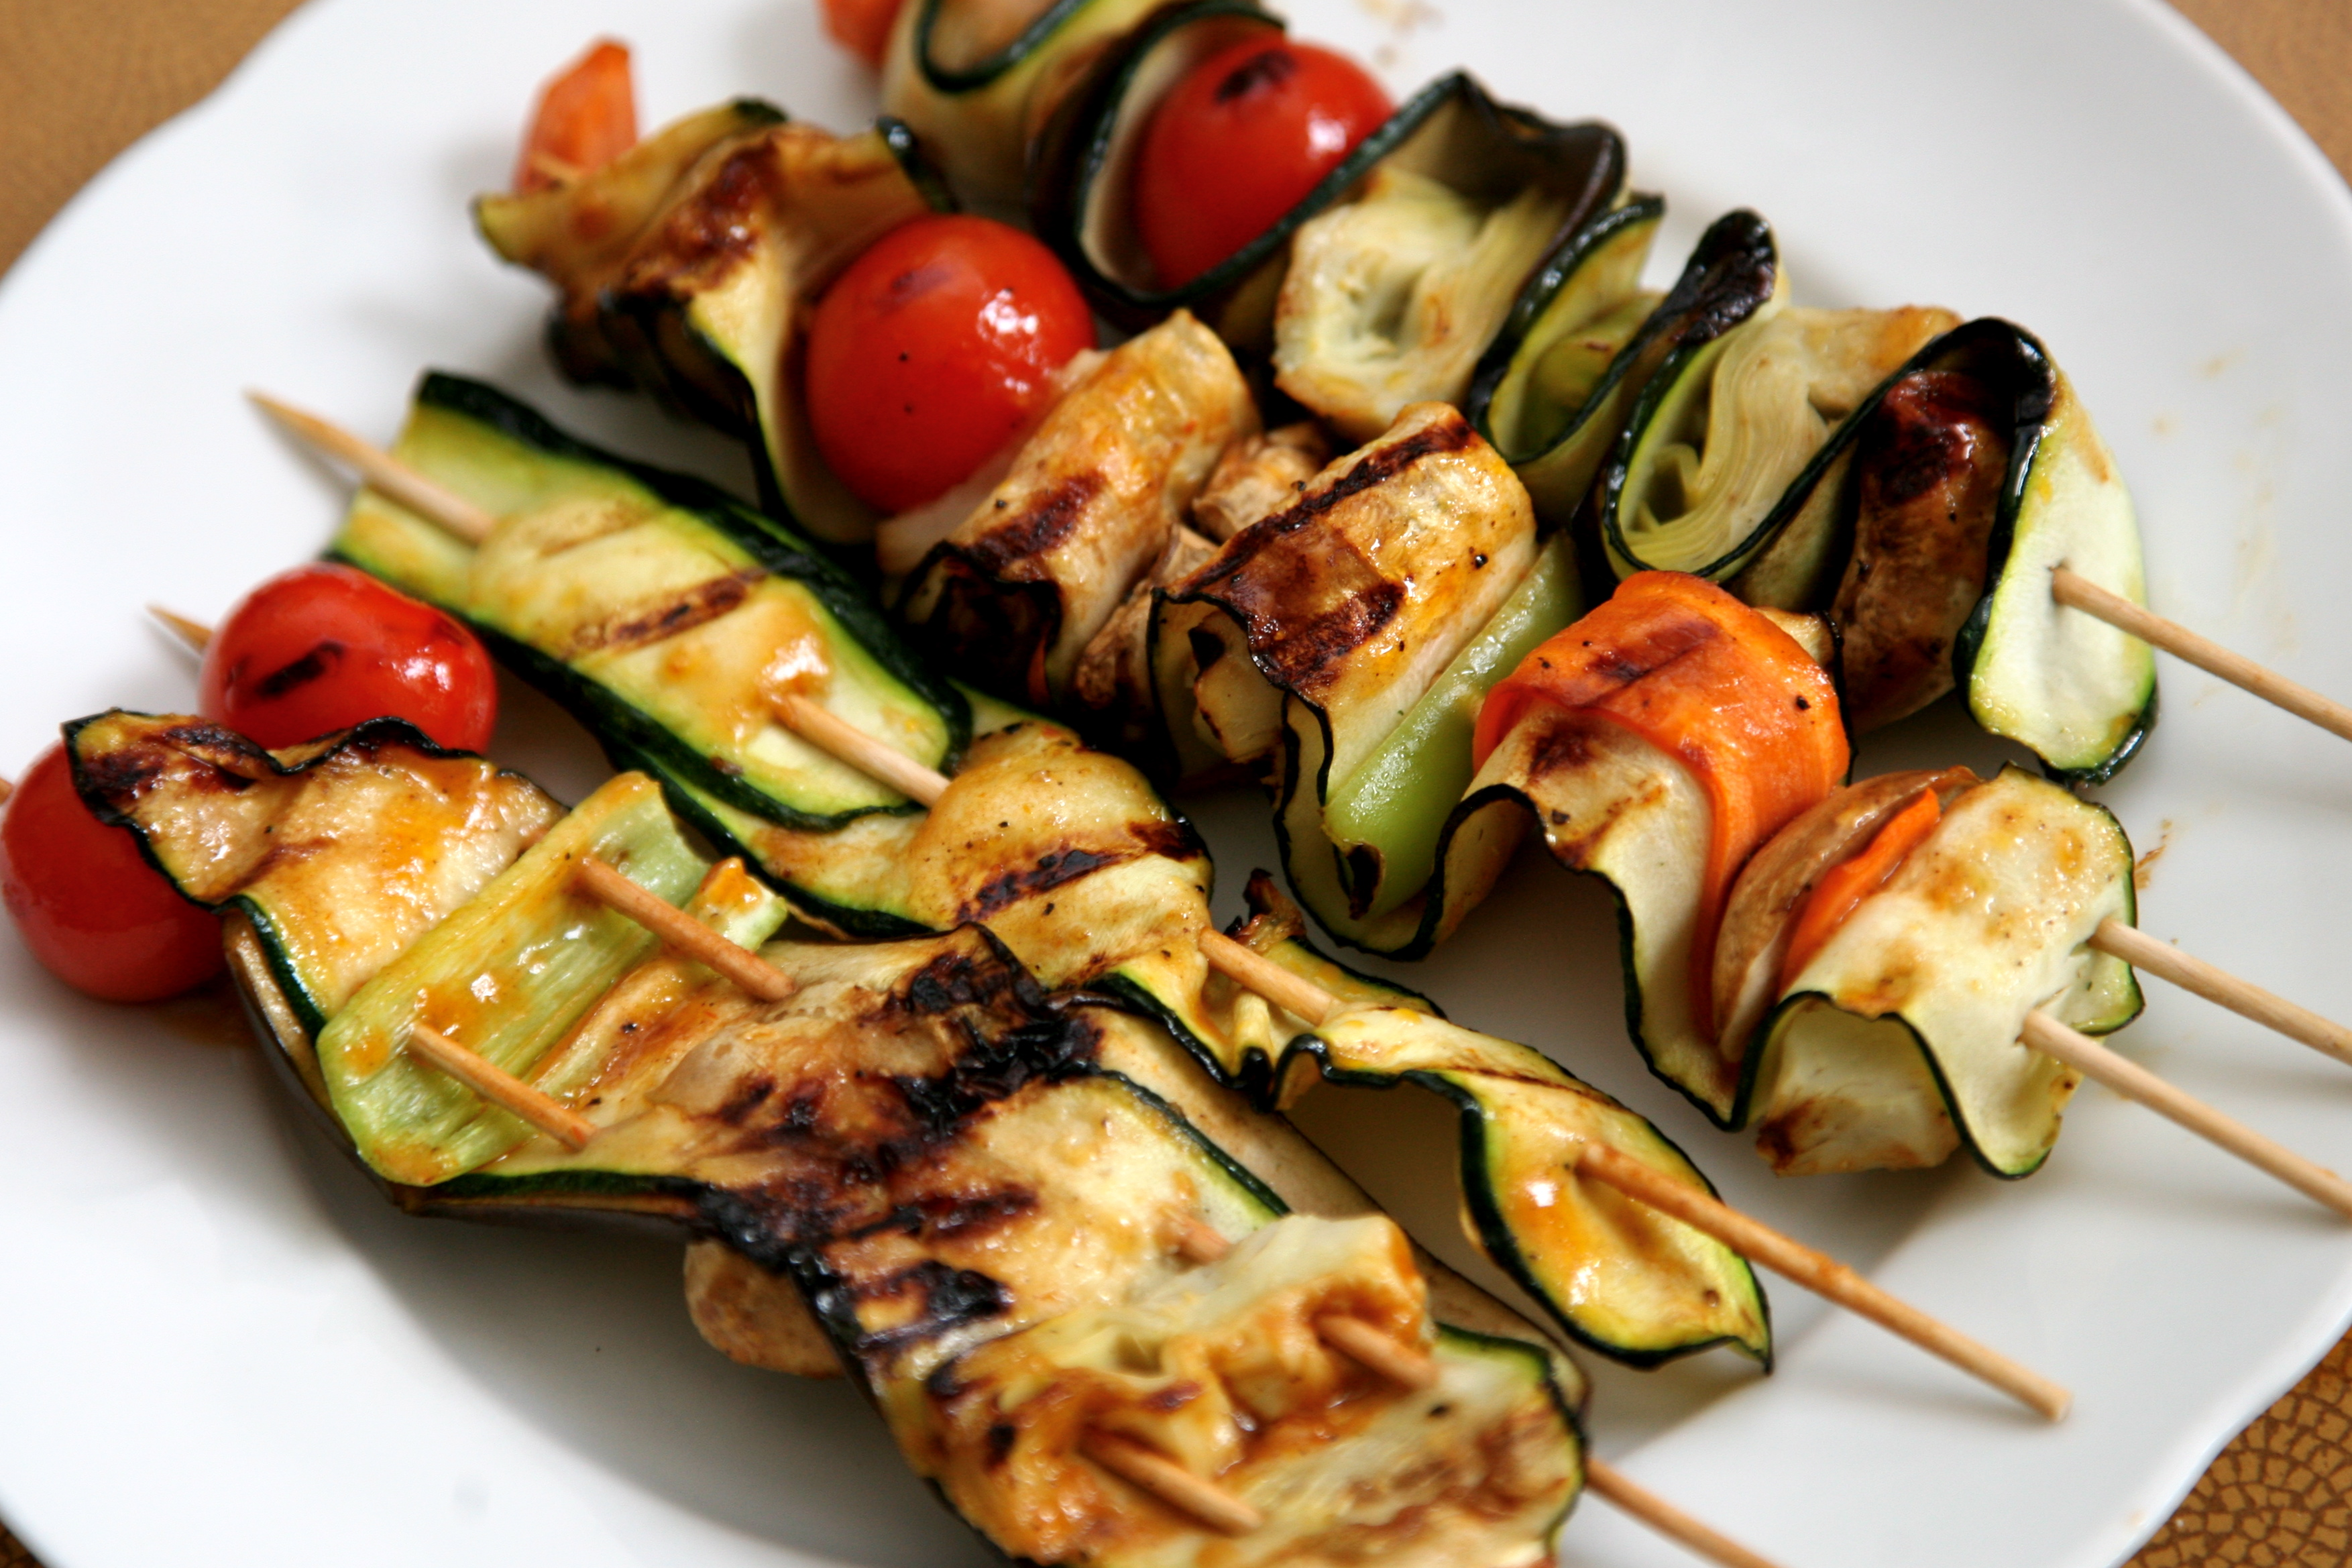 Picture of Skewered Undulated Vegetables